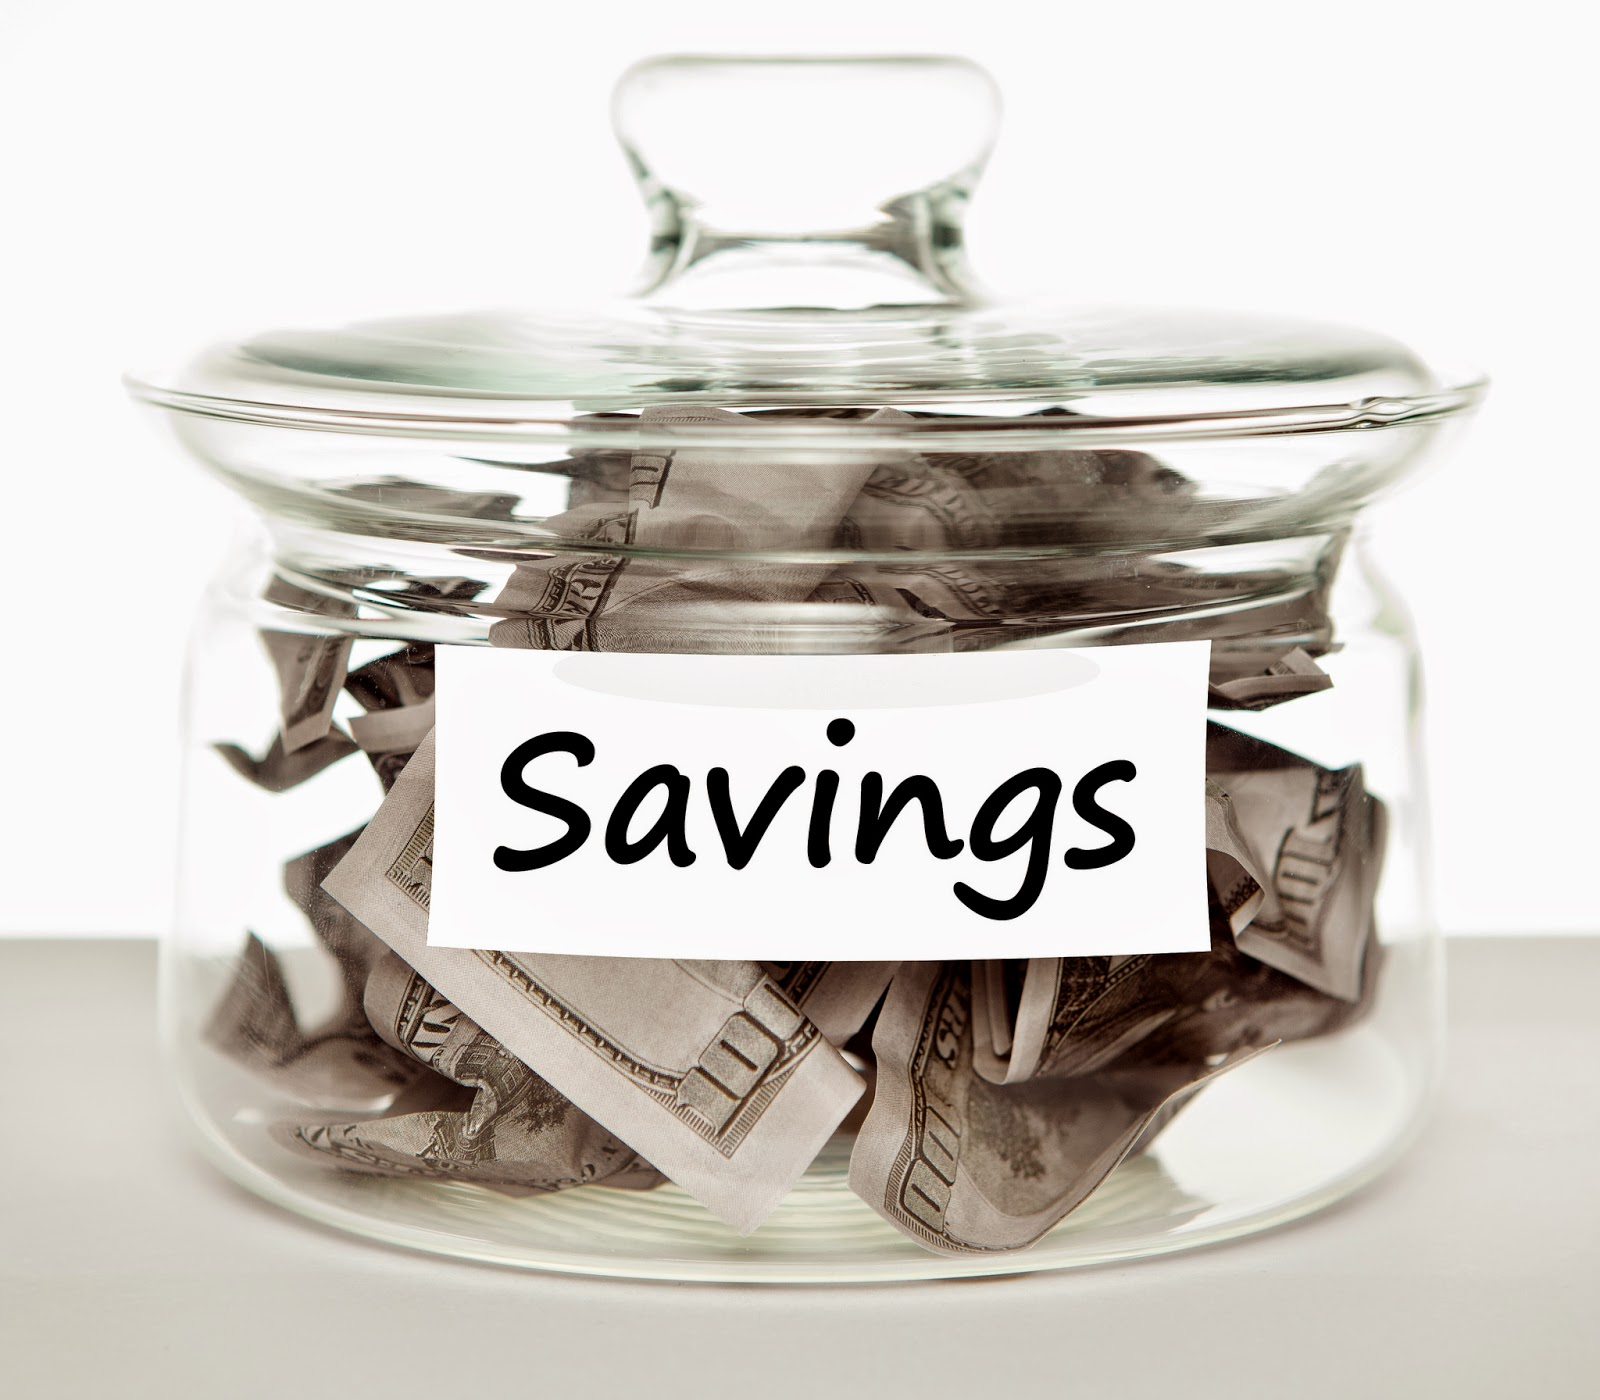 Savings Account by Jonah Engler